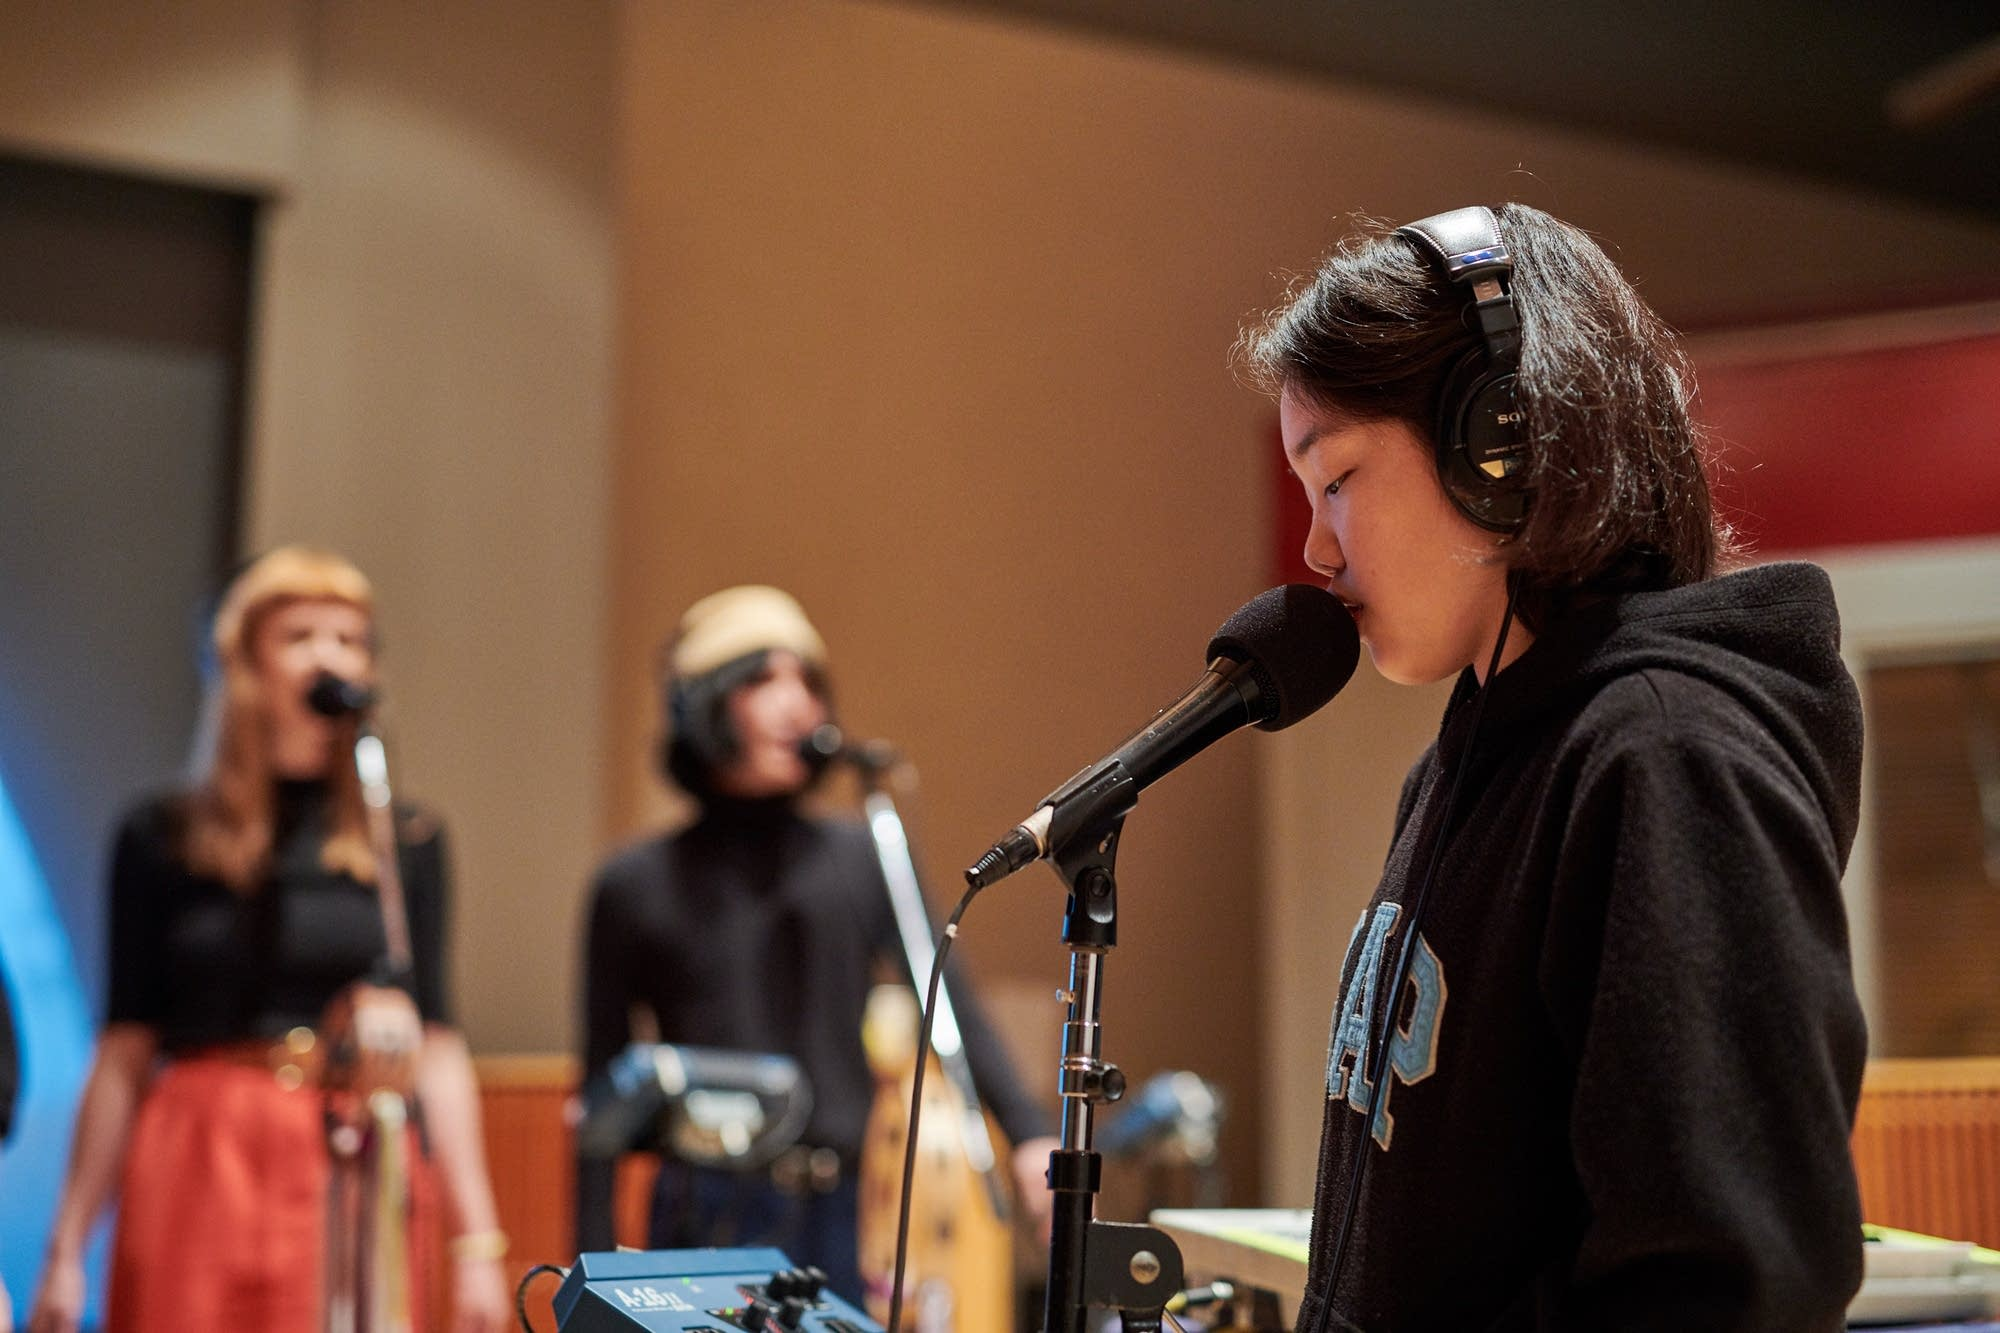 Superorganism perform in The Current studio